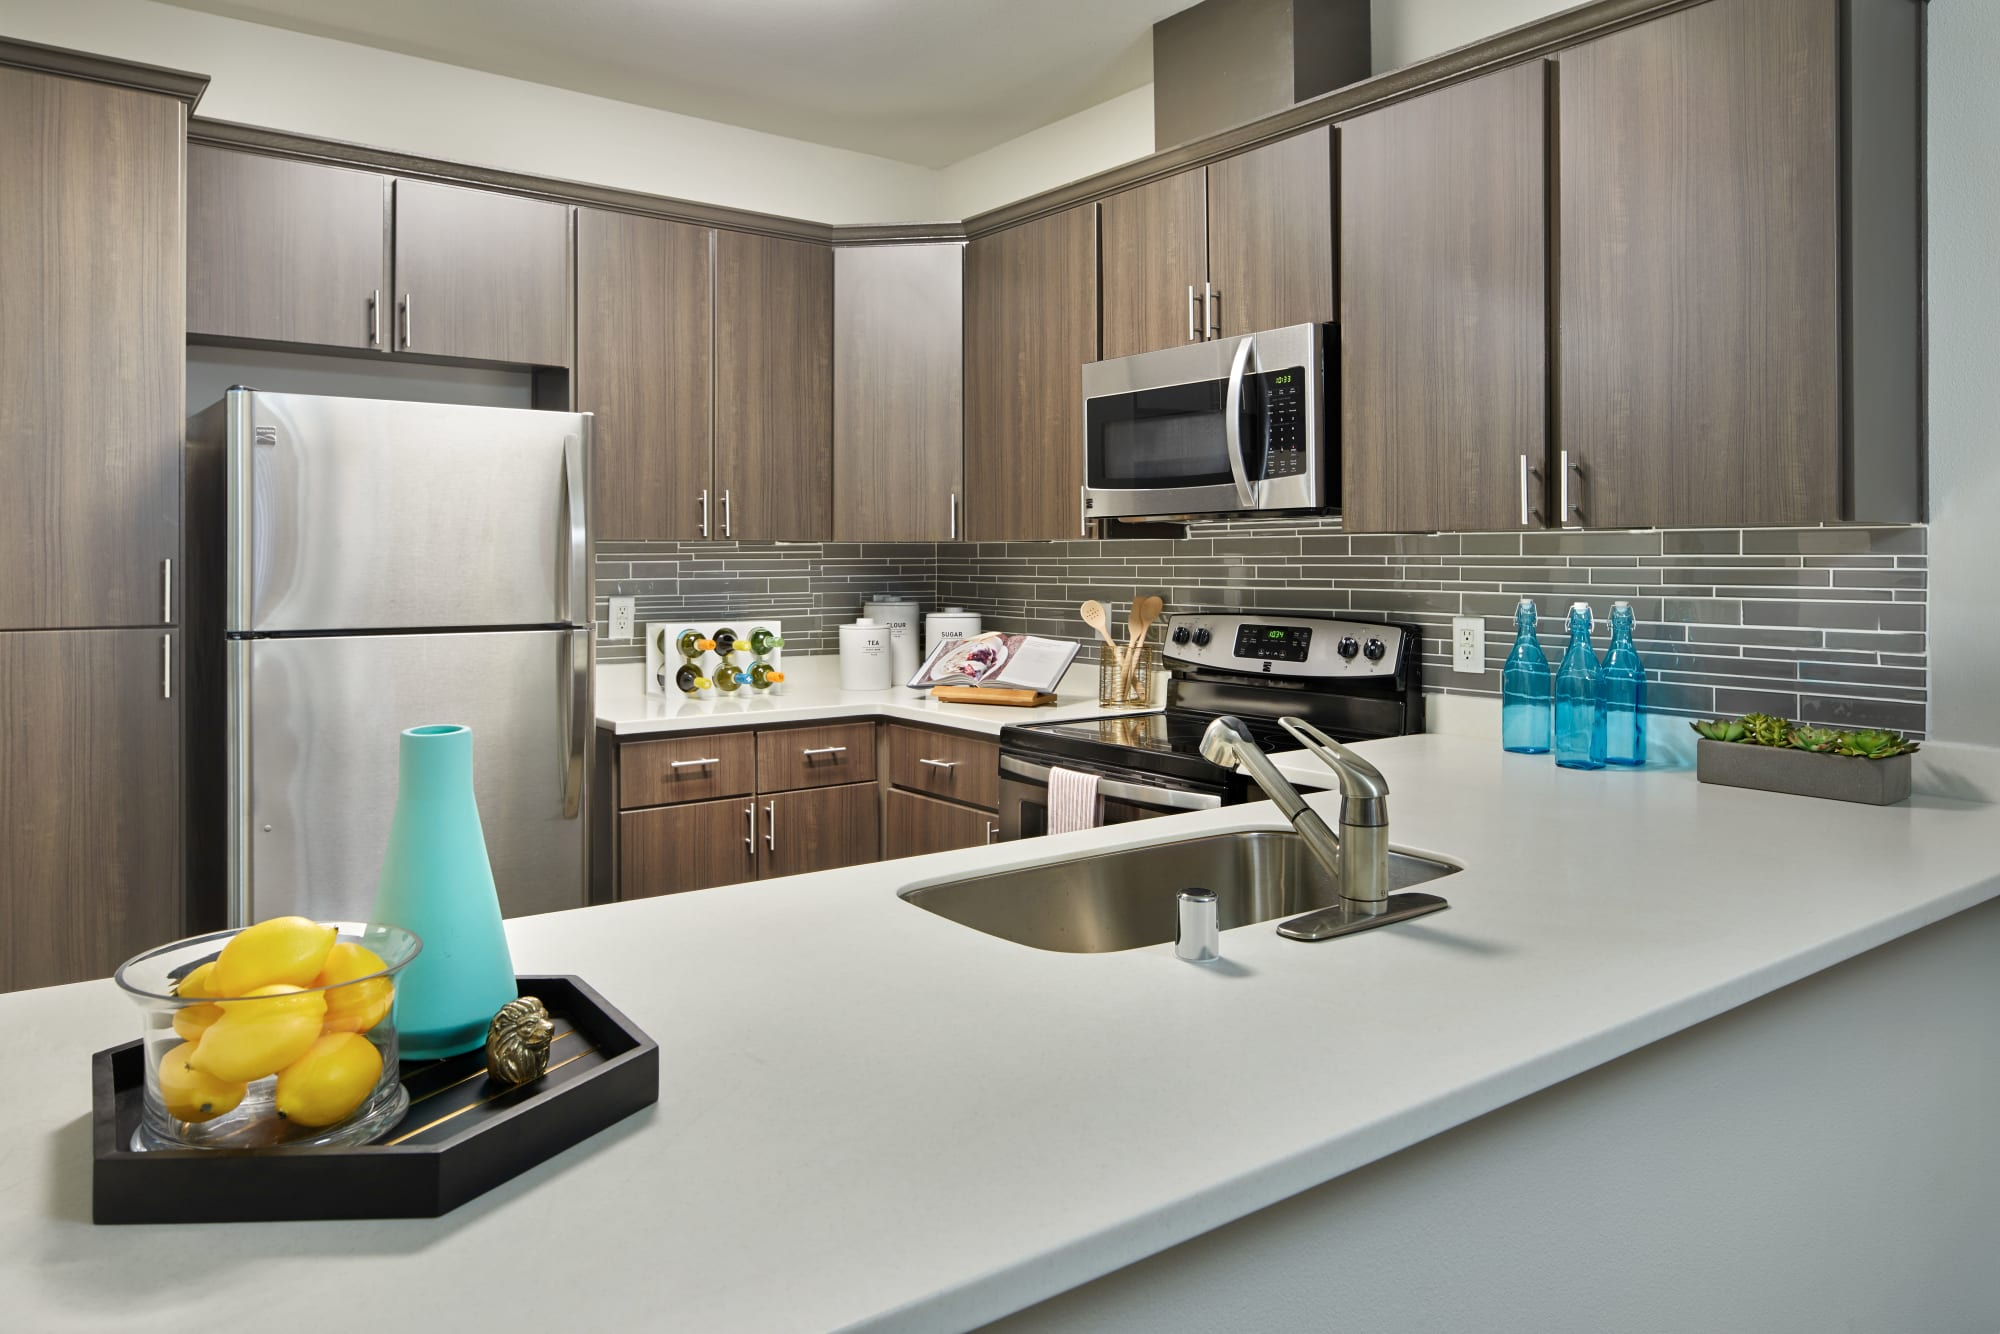 Renovated kitchen with brown cabinets at Brookside Village in Auburn, Washington